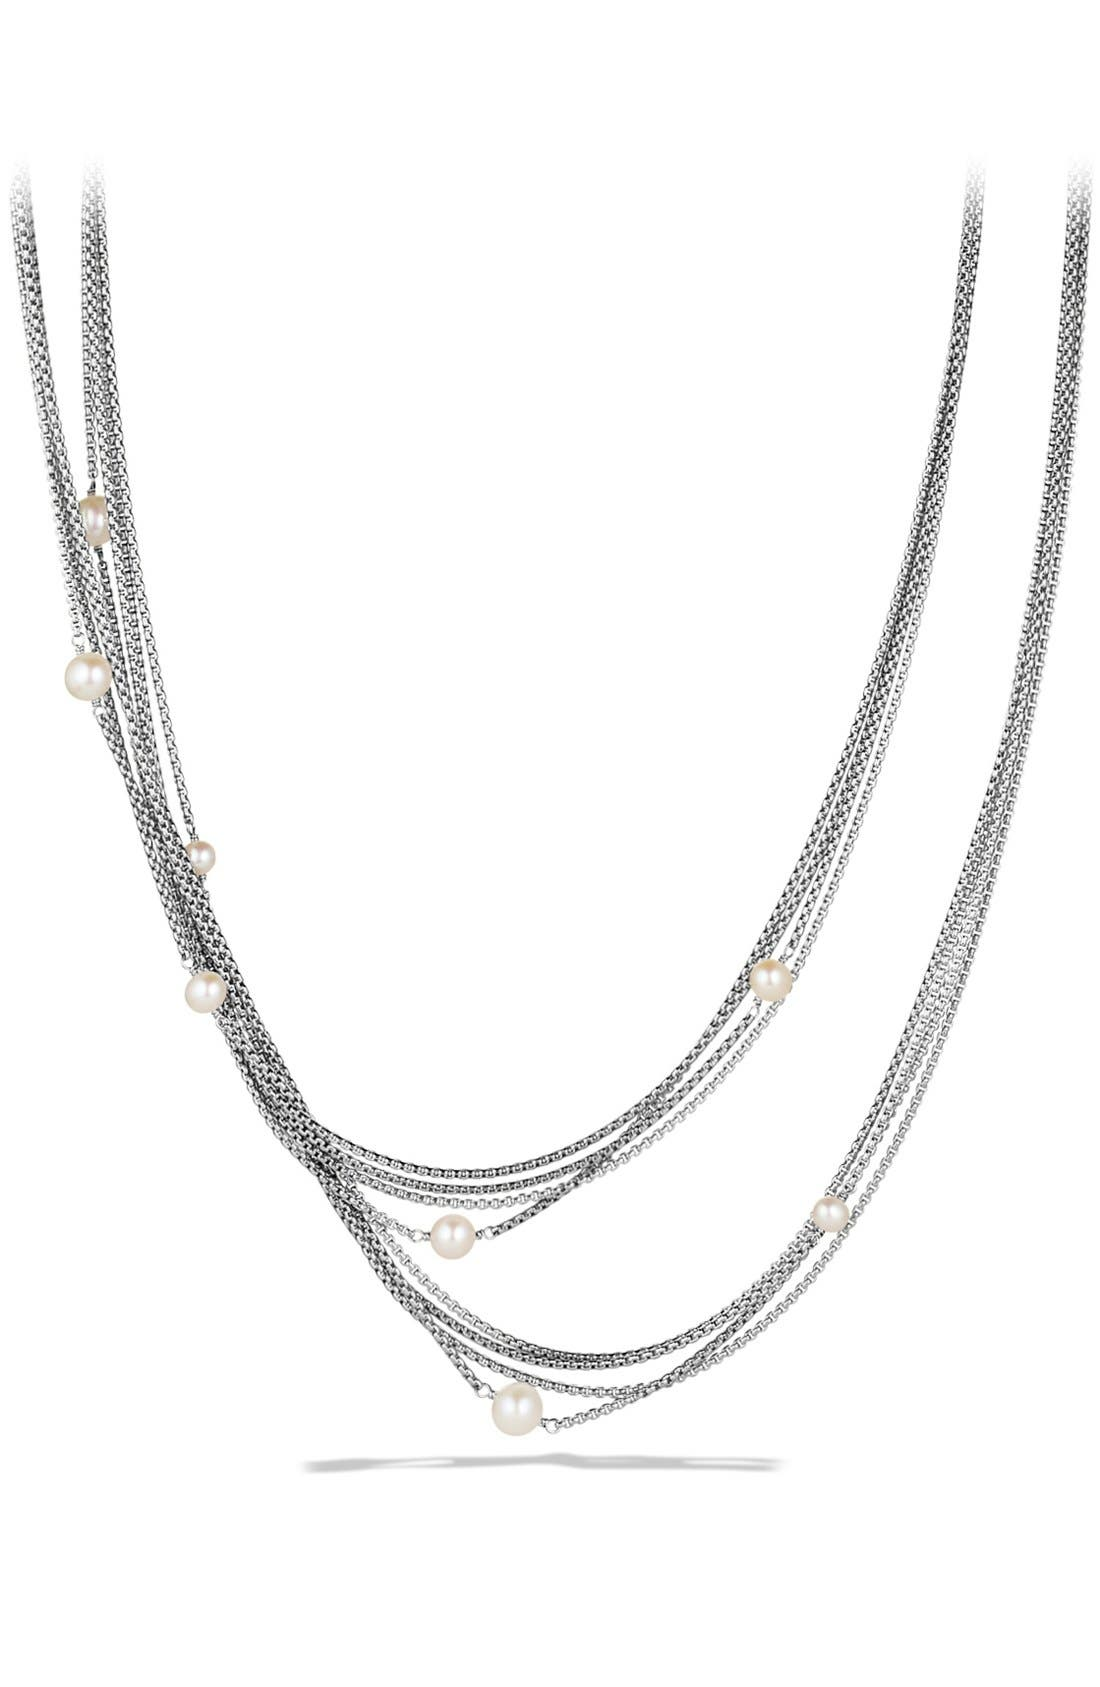 Four-Row Chain Necklace with Pearls,                             Main thumbnail 1, color,                             PEARL